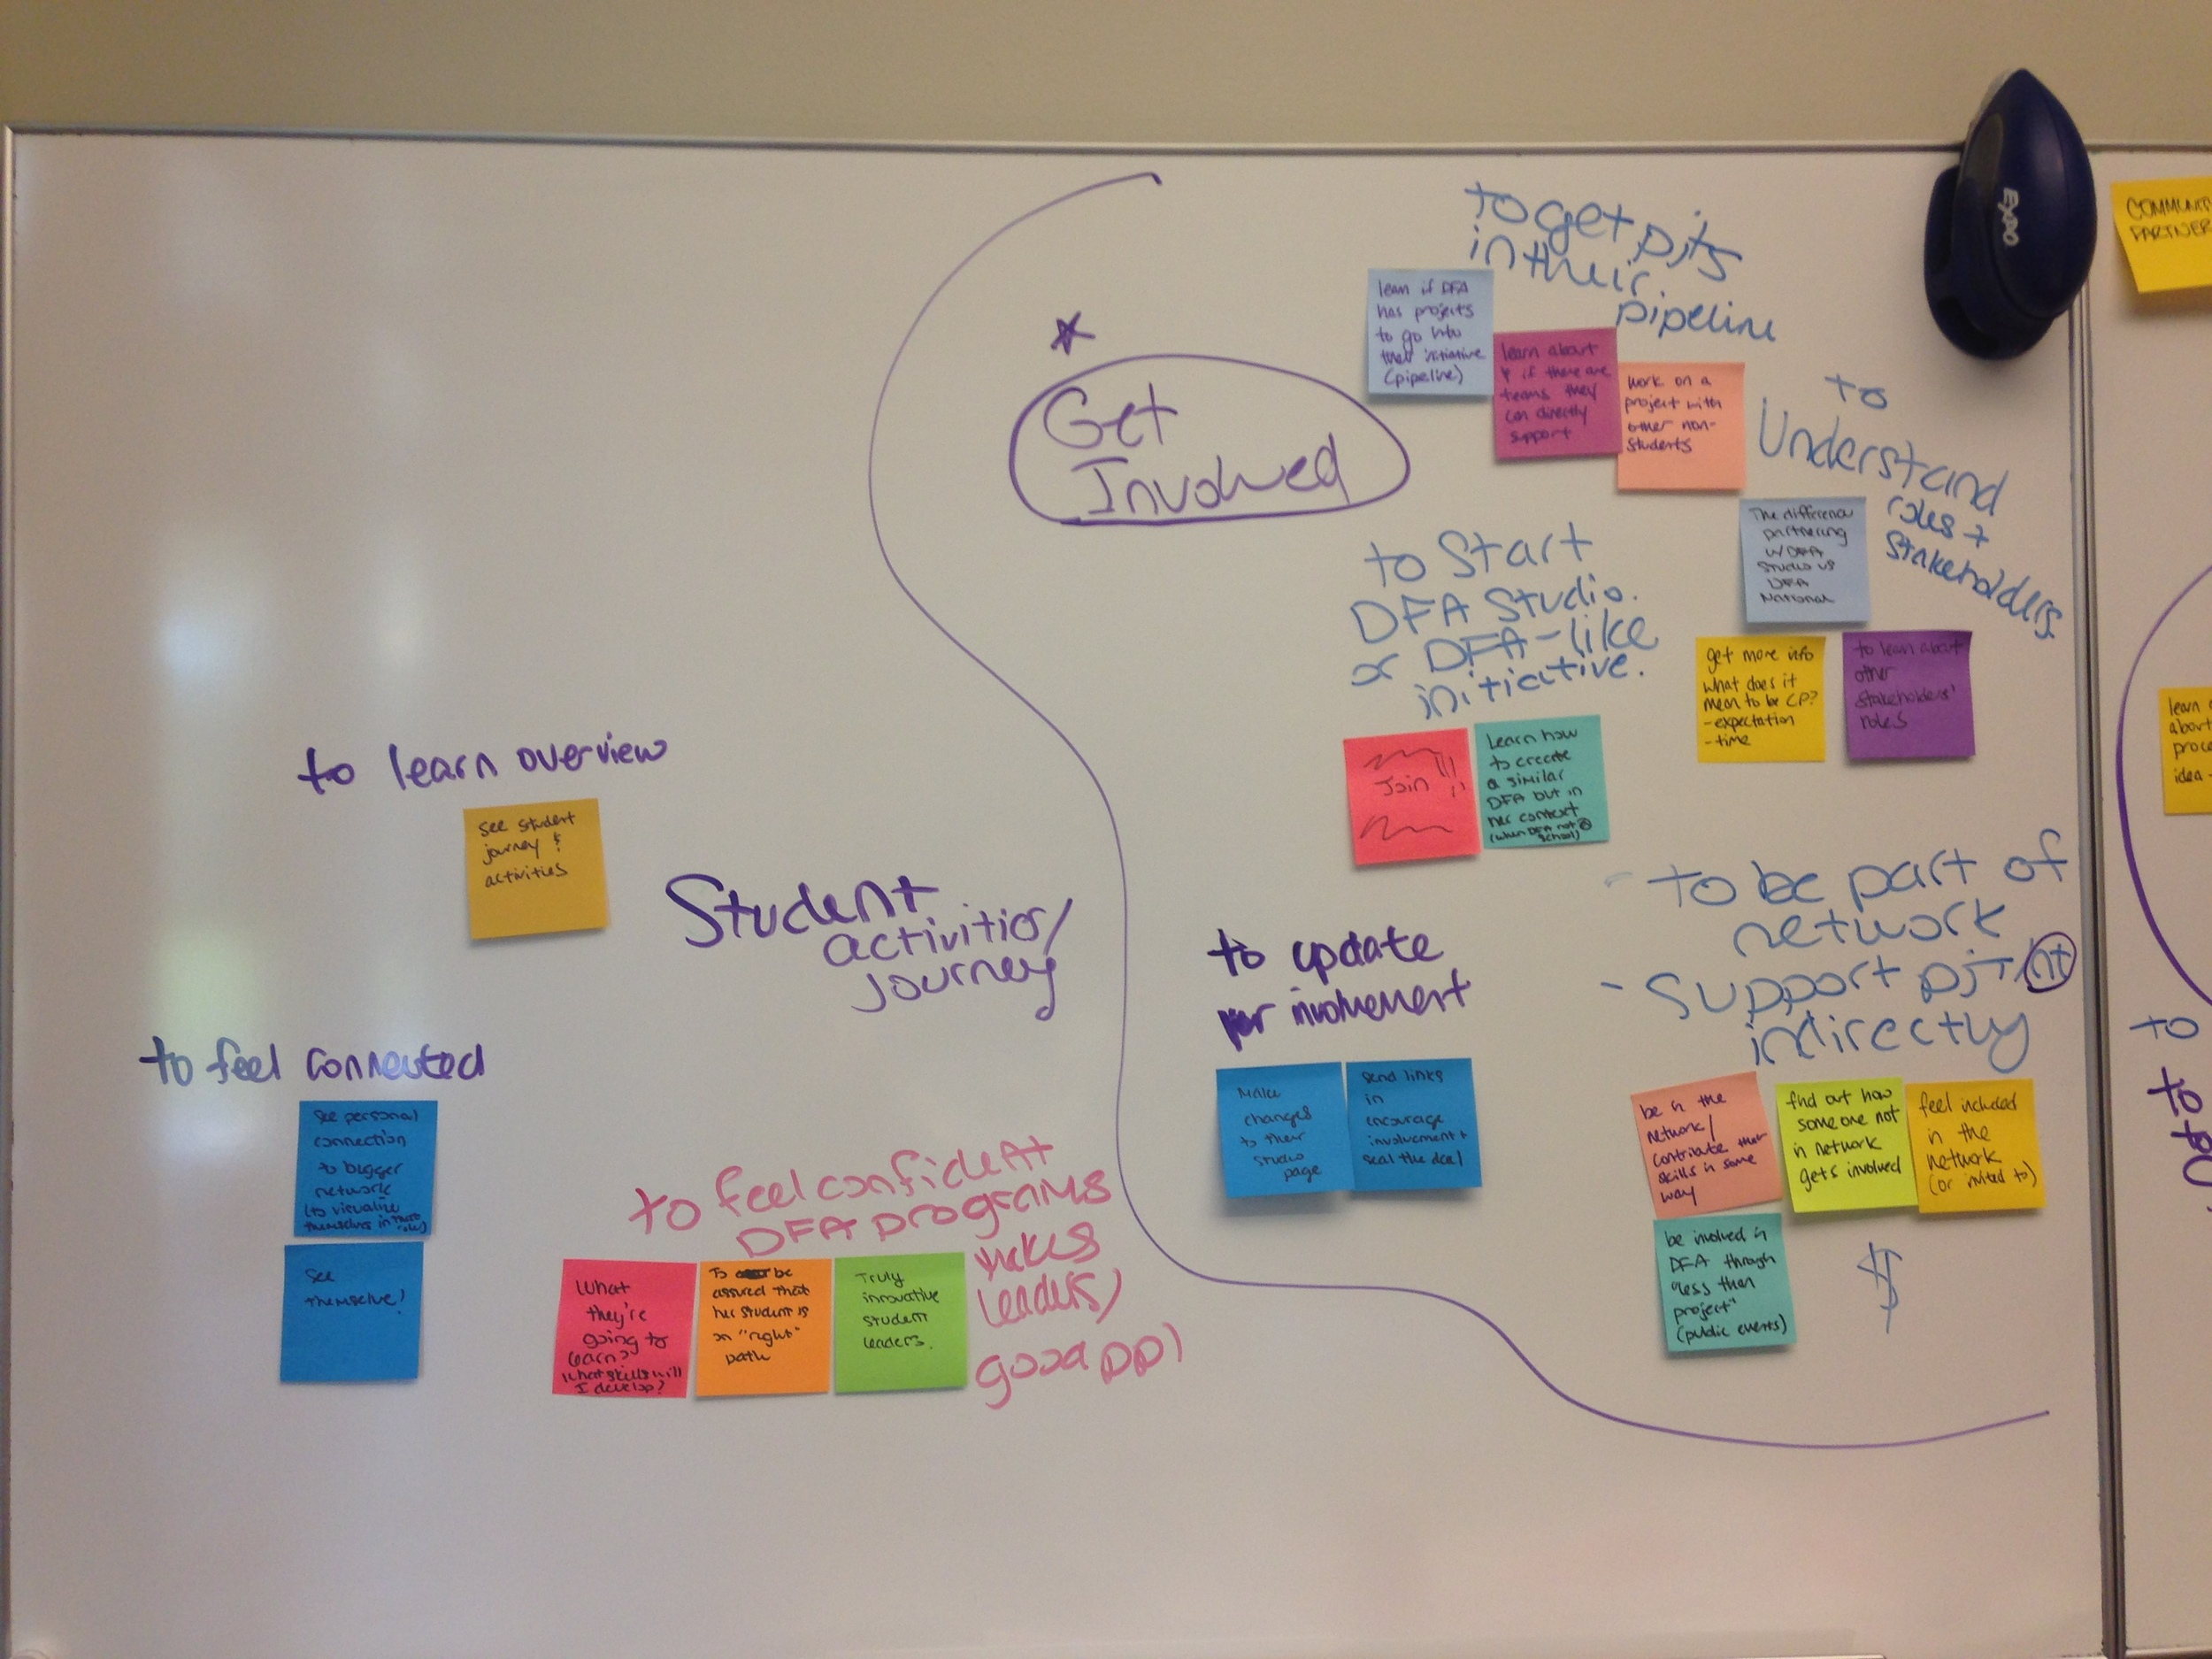 We clustered this stakeholder data to identify goals of coming to the website.